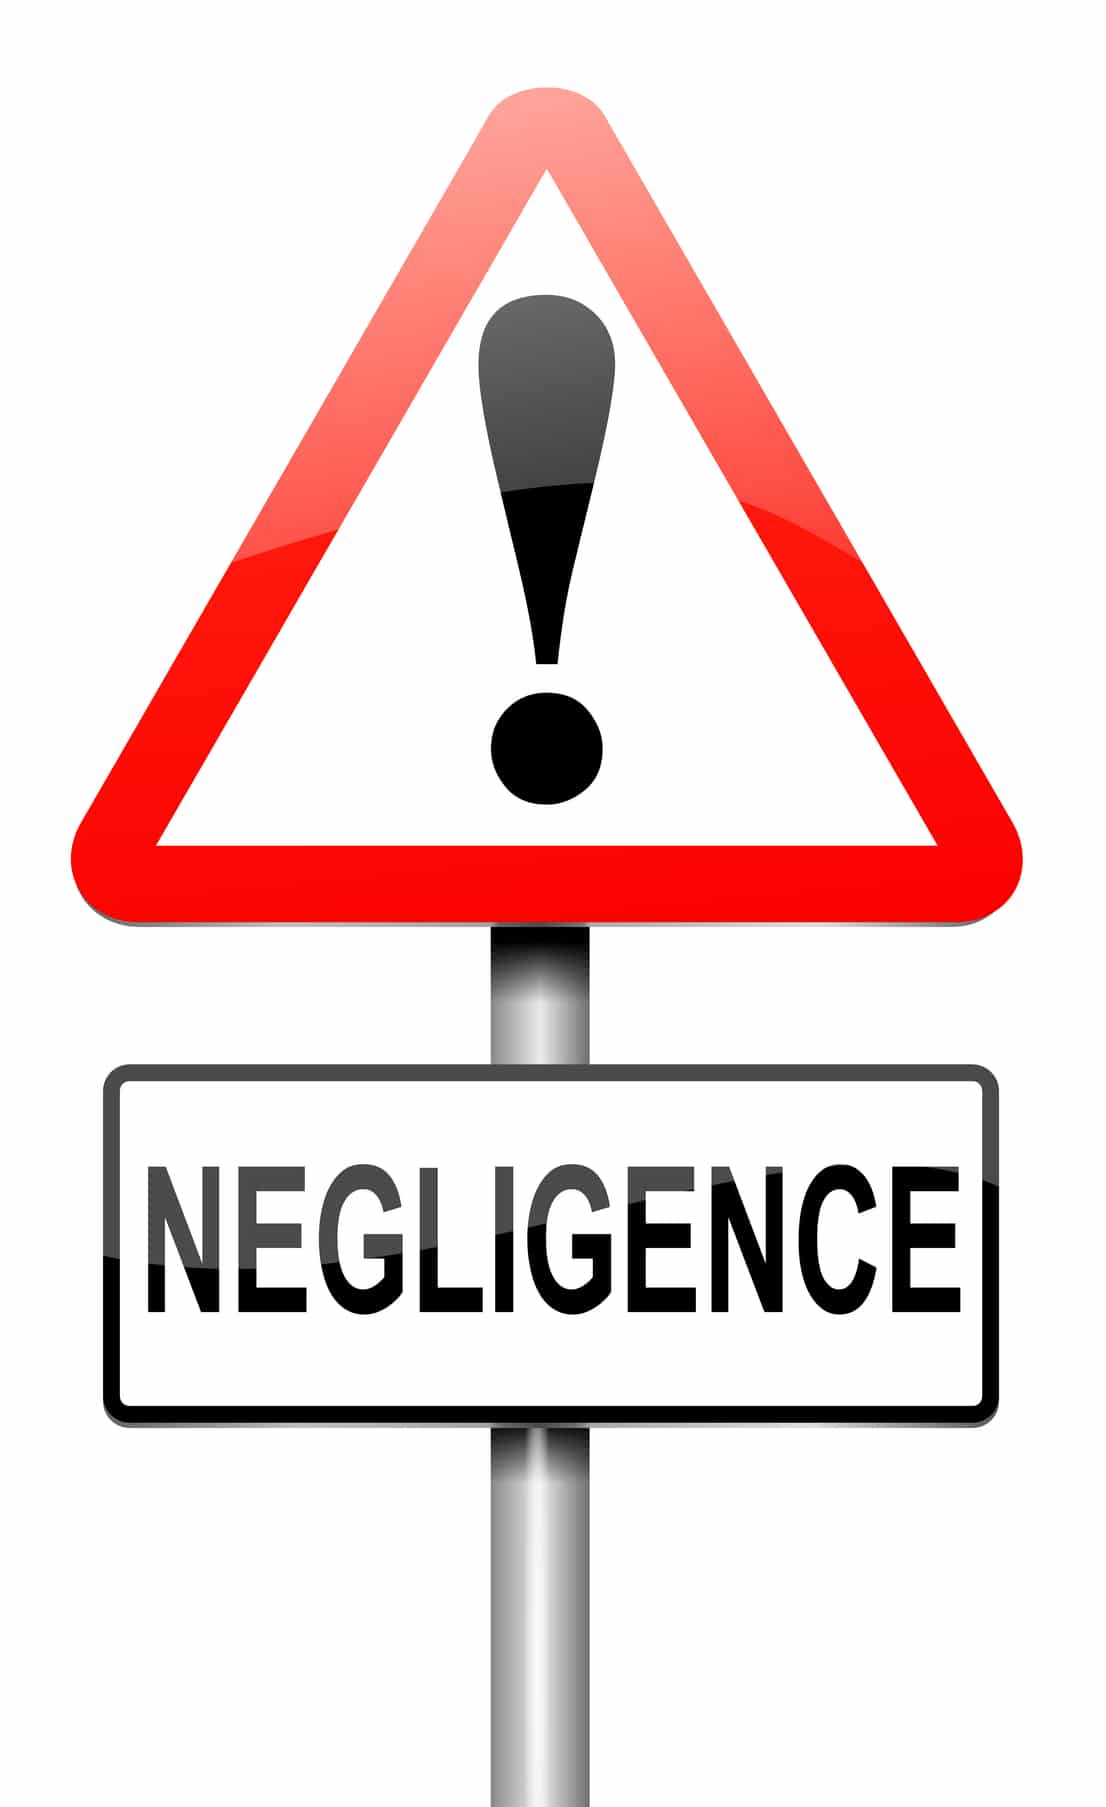 negligence definition essay Negligence (lat negligentia) is a failure to exercise the appropriate and or ethical ruled care expected to be exercised amongst specified circumstances the area of.